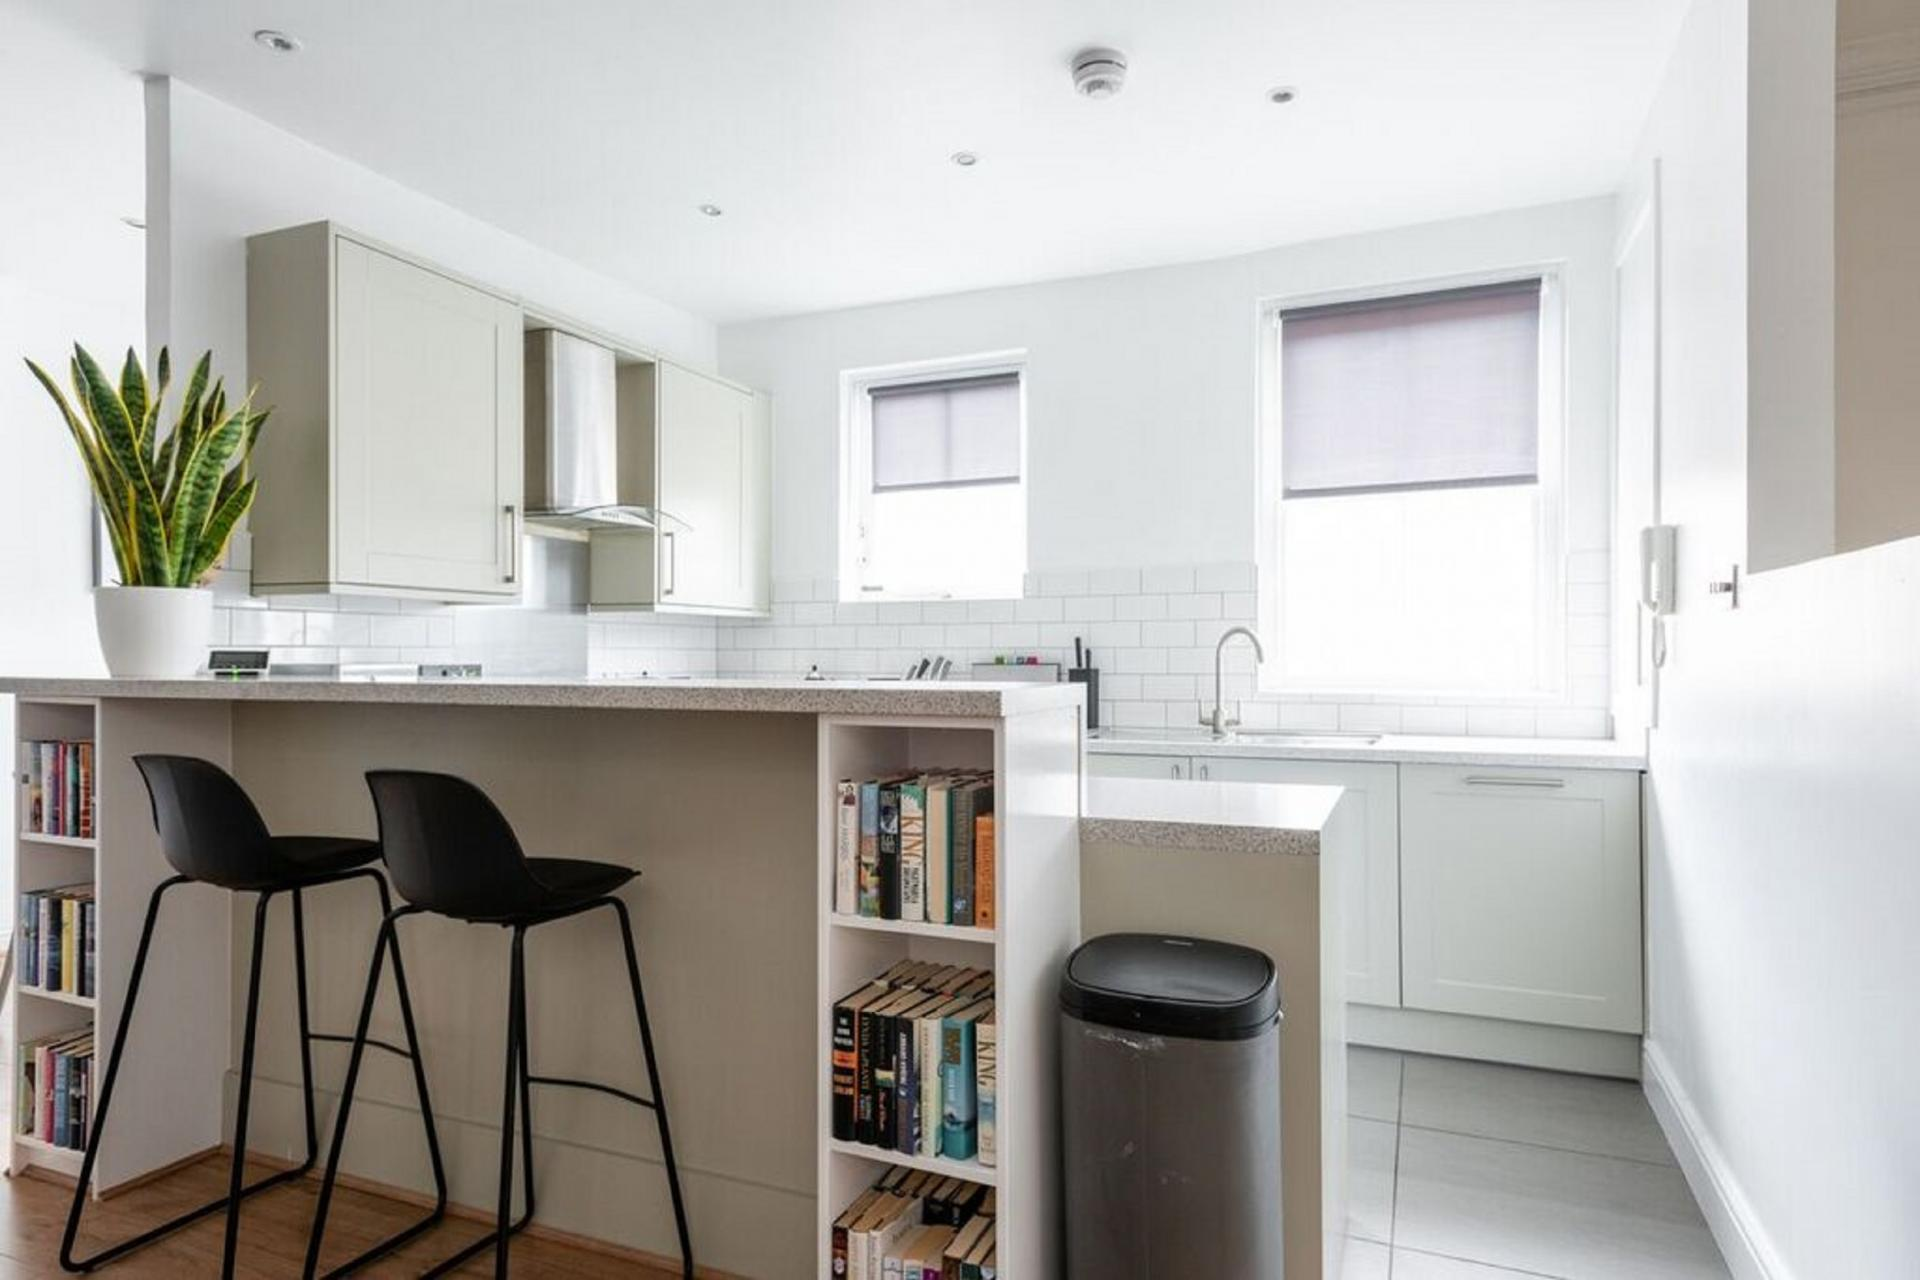 Kitchen at The Paddington Mews, Paddington, London - Citybase Apartments